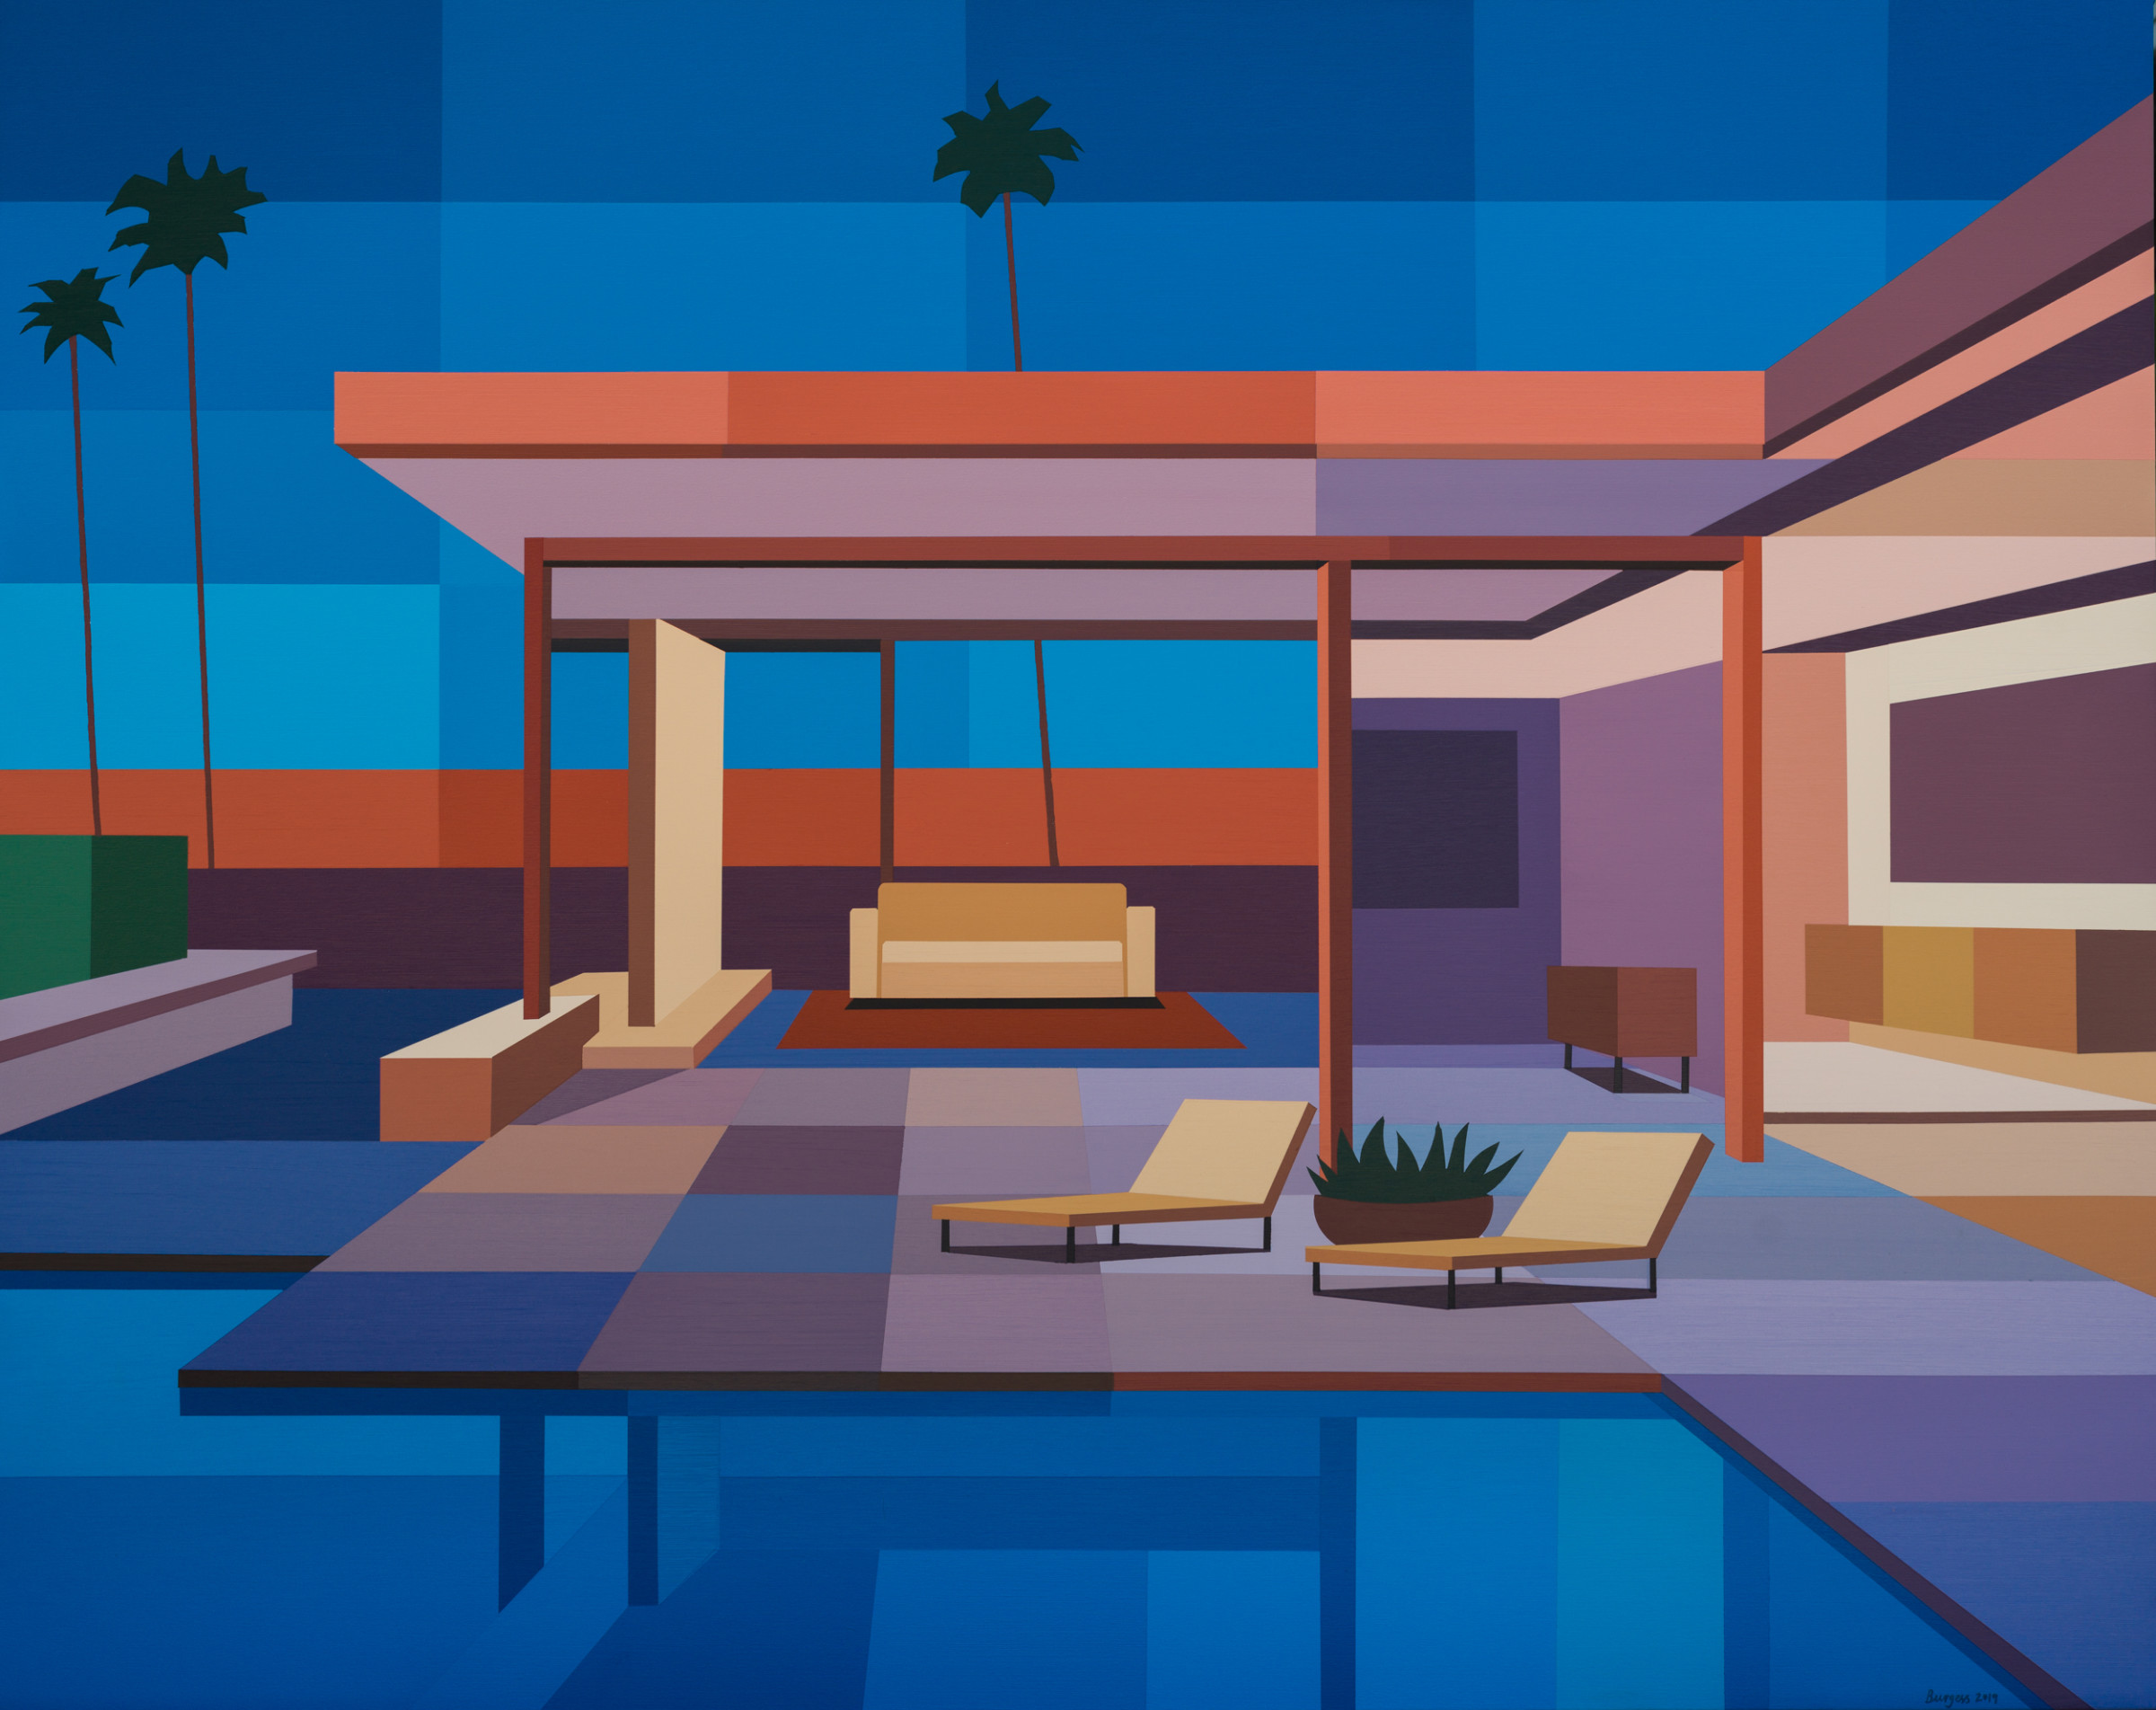 """<span class=""""link fancybox-details-link""""><a href=""""/exhibitions/43/works/artworks2783/"""">View Detail Page</a></span><div class=""""artist""""><strong>Andy Burgess</strong></div><div class=""""title""""><em>Modern House II</em>, 2019</div><div class=""""signed_and_dated"""">Signed, dated recto</div><div class=""""medium"""">Acrylic on Canvas</div><div class=""""dimensions"""">137.2 x 172.7 cm<br>54 x 68 in.</div>"""